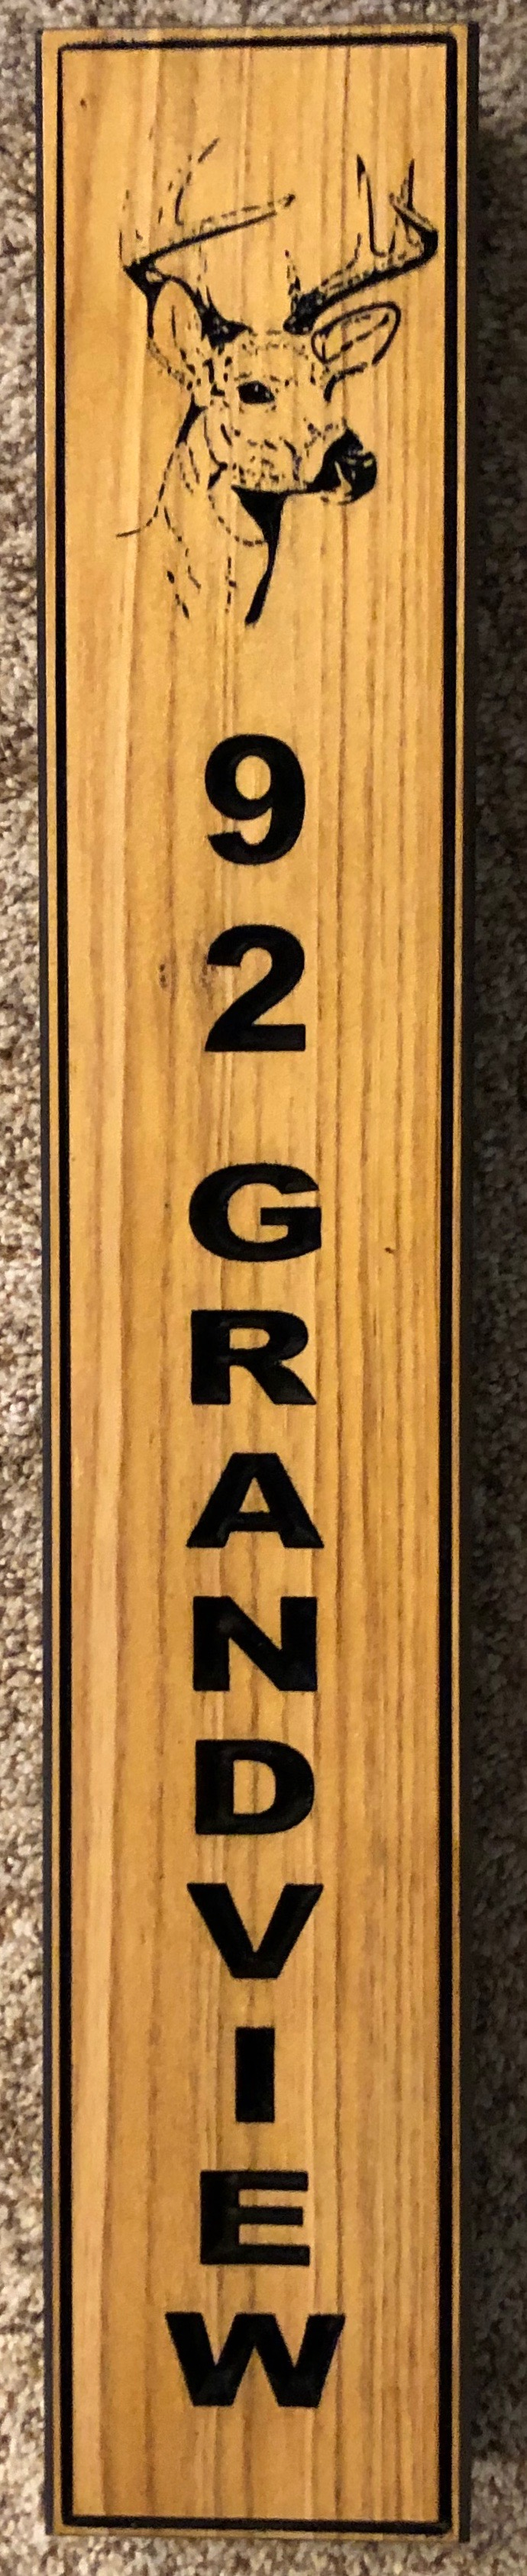 615  vertical wood sign with street address and deer graphic